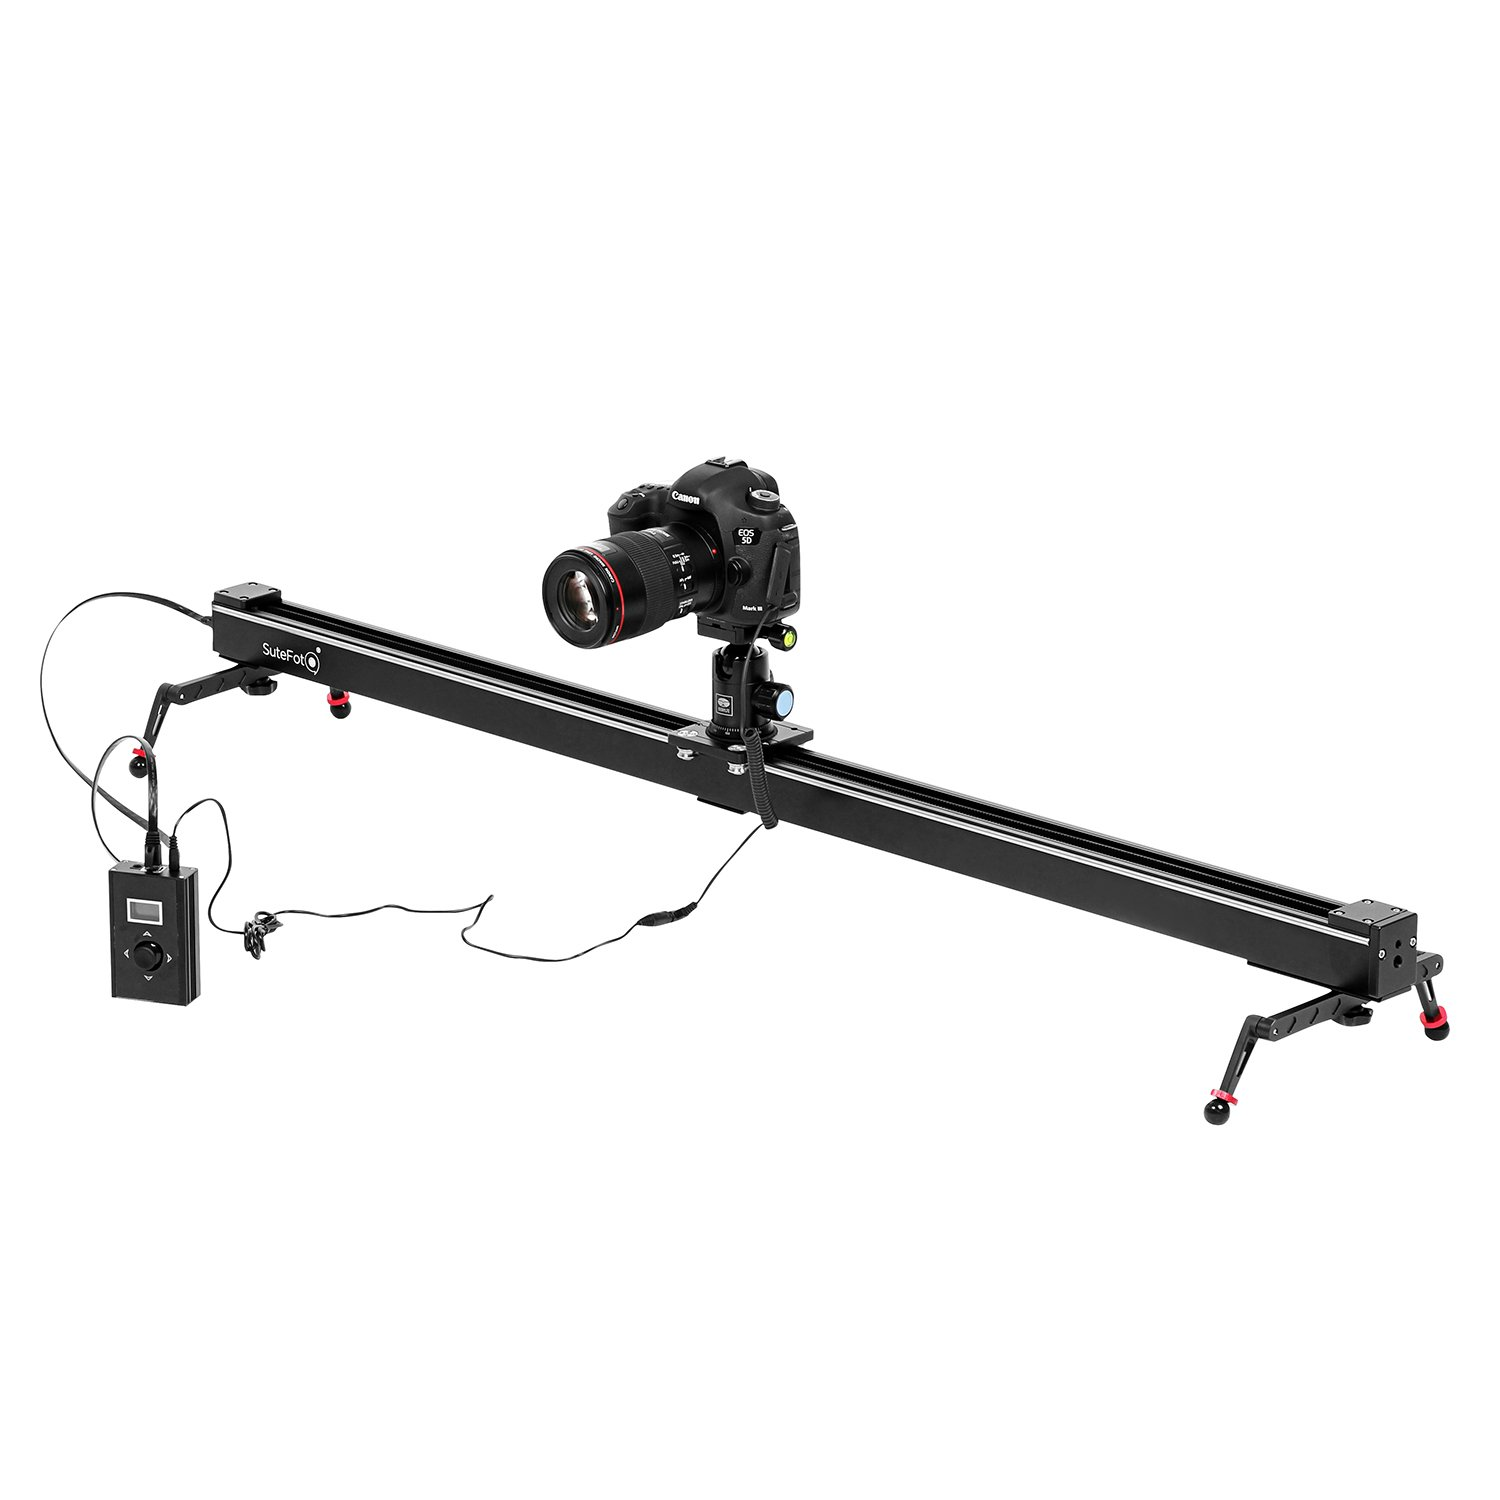 Dazzne 39.37 inch Electronic Motorized Camera Slider DSLR Camera Track Dolly slider Video Stablilzer Rail with Time Lapse Tracking Panoramic Video Shooting, Perfect Photograph Movie Film Video Making